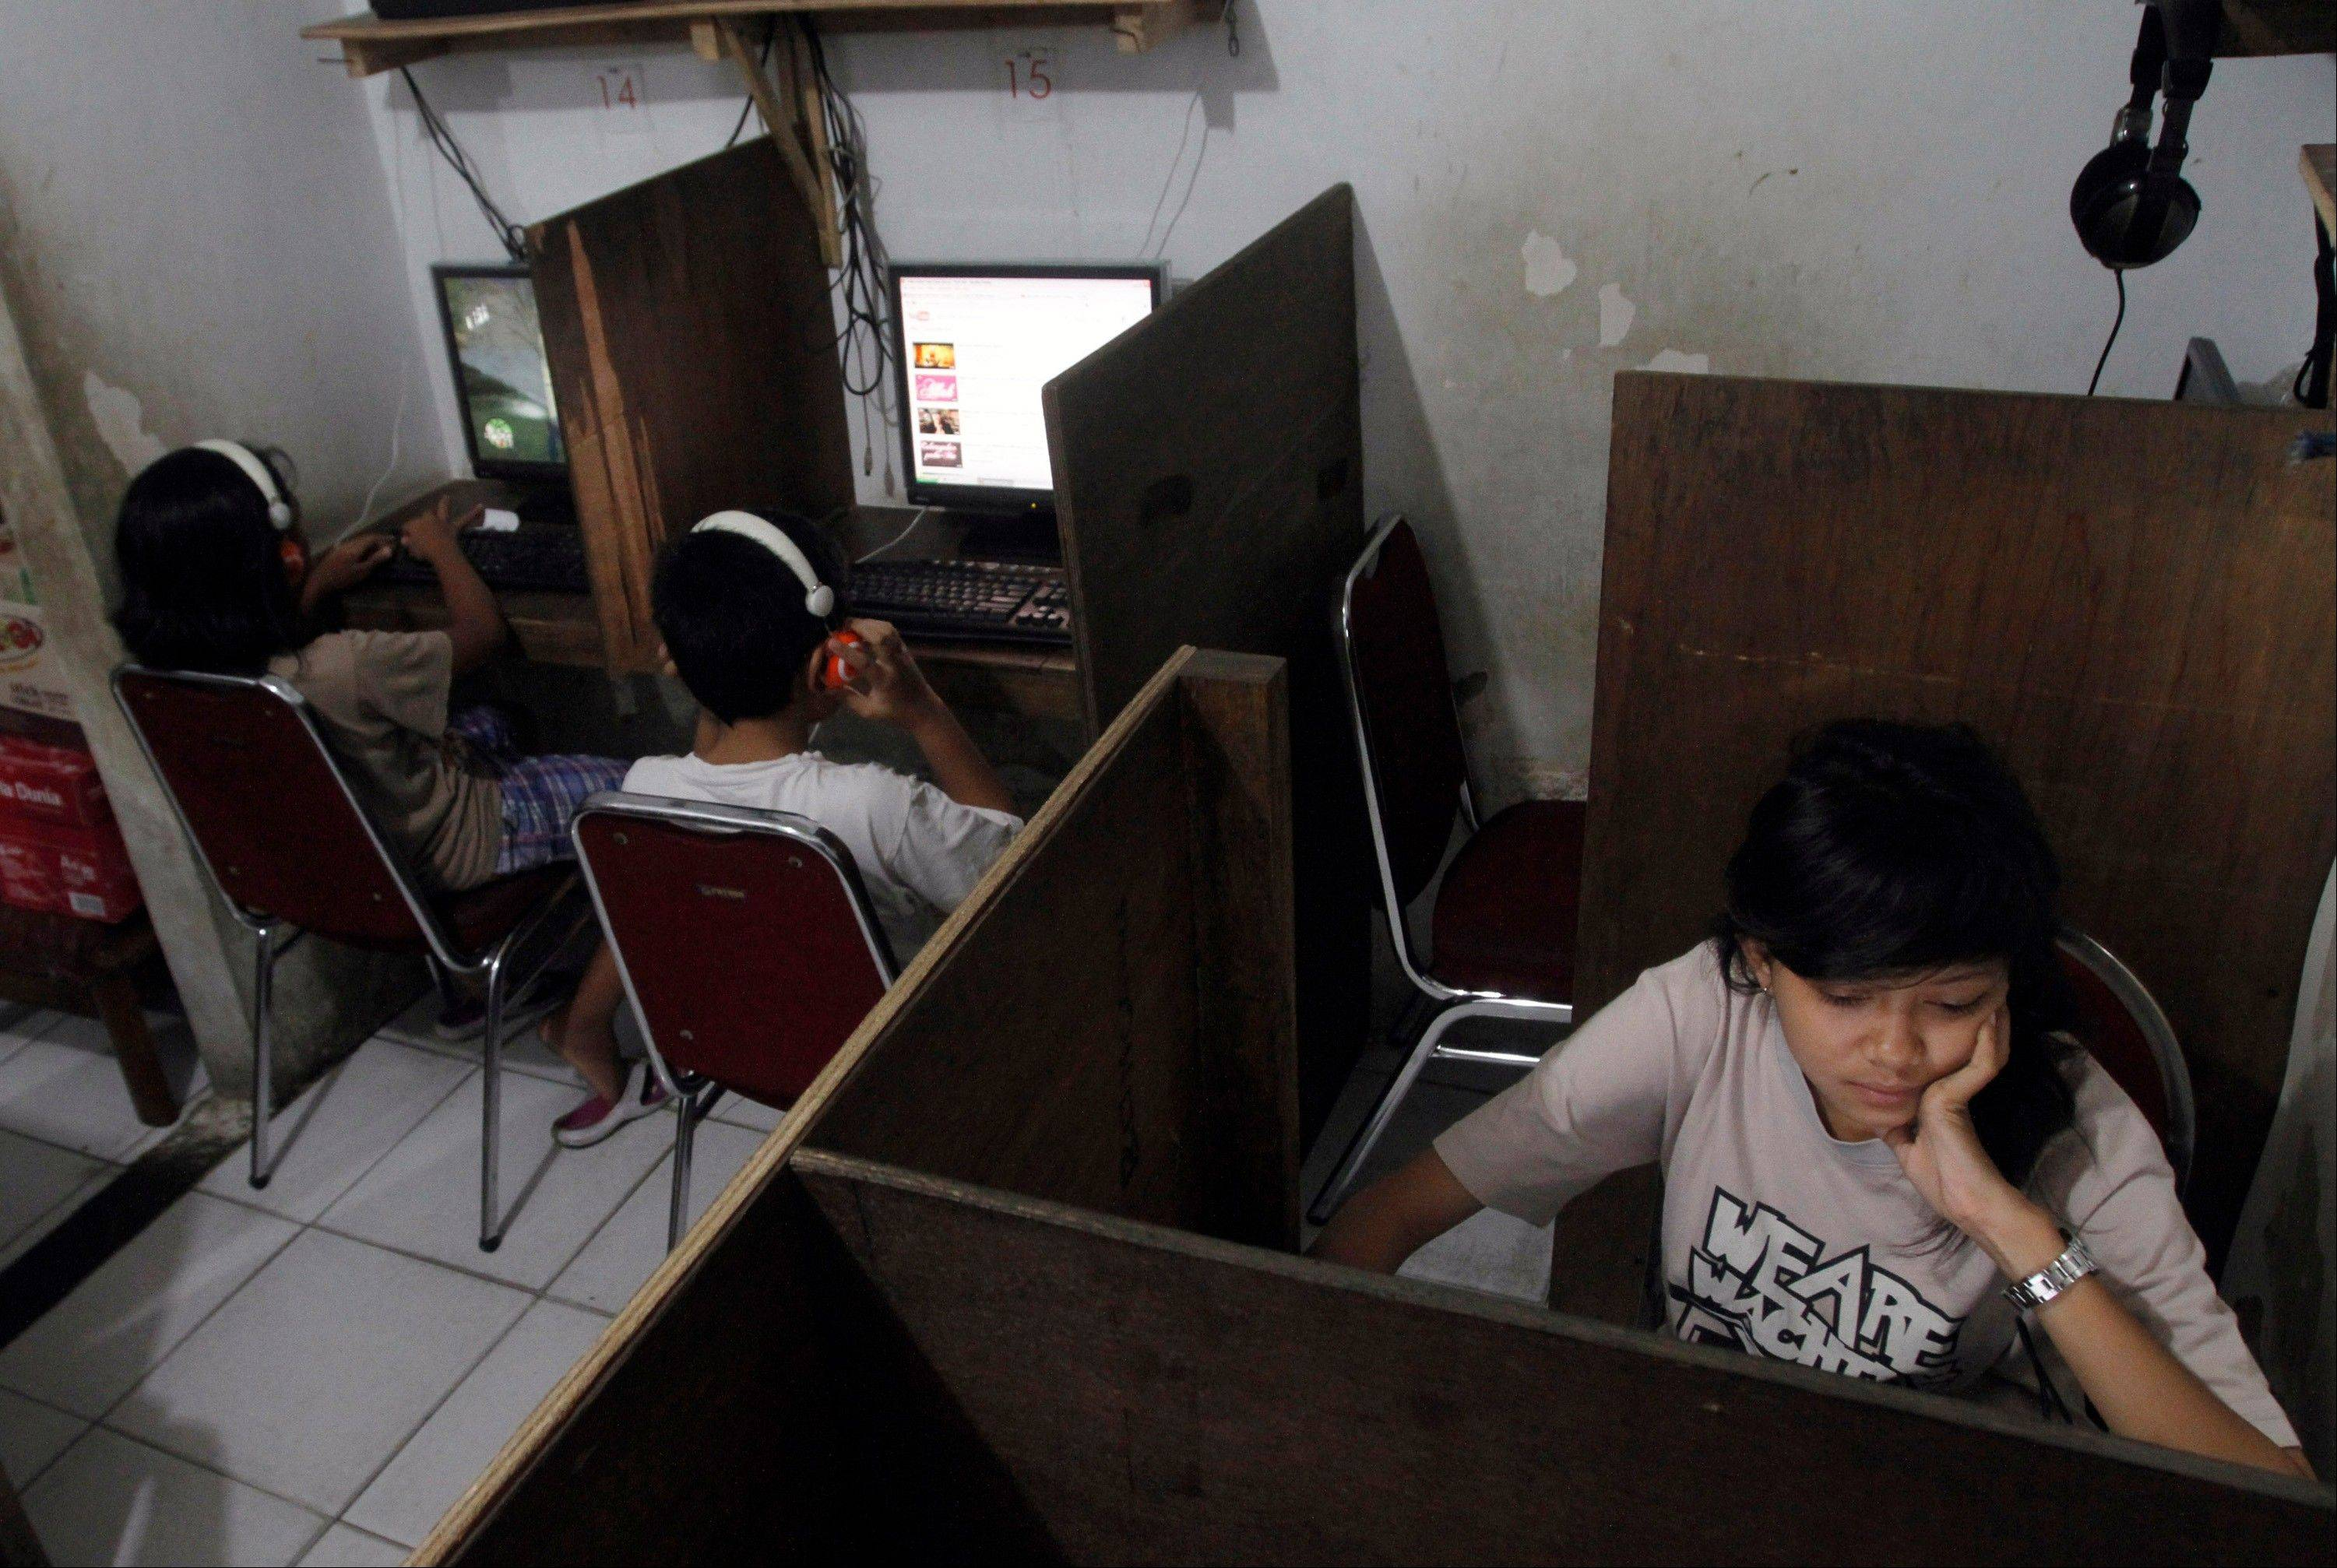 In this Friday, Oct. 19, 2012, photo, Indonesian youths browse at an internet cafe in Jakarta, Indonesia. There are growing numbers of incidents involving internet social media networks being used as a mean for children trafficking in Indonesia, at least eight reported this month alone of young girls being abducted and enslaved by men who approached them randomly on Facebook, raising concerns that the overall number of trafficked children remains grossly underestimated in the sprawling archipelago of 240 million.